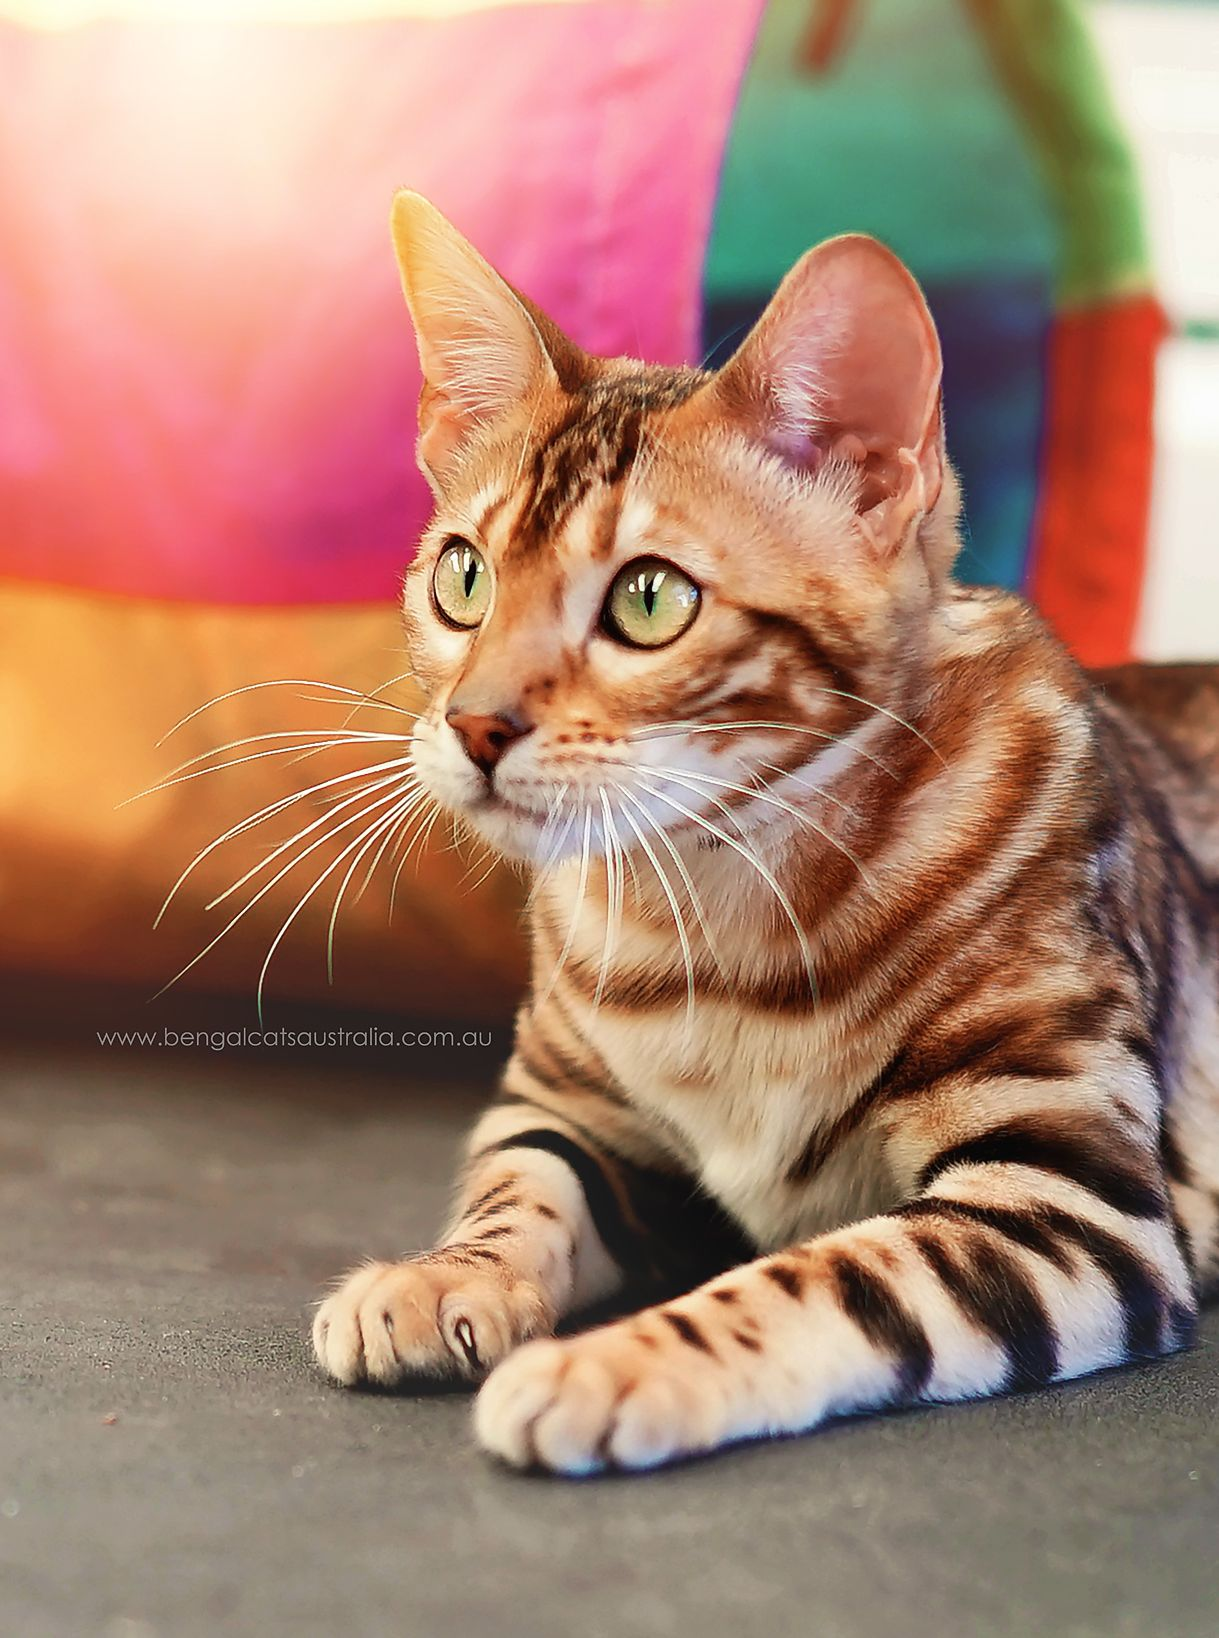 Meet The Bengal Cats And Kittens Of Ashmiyah Bengals Bengal Cats Australia What More Could One Want In Life We Hope Yo Bengal Cat Cat Meeting Bengal Kitten